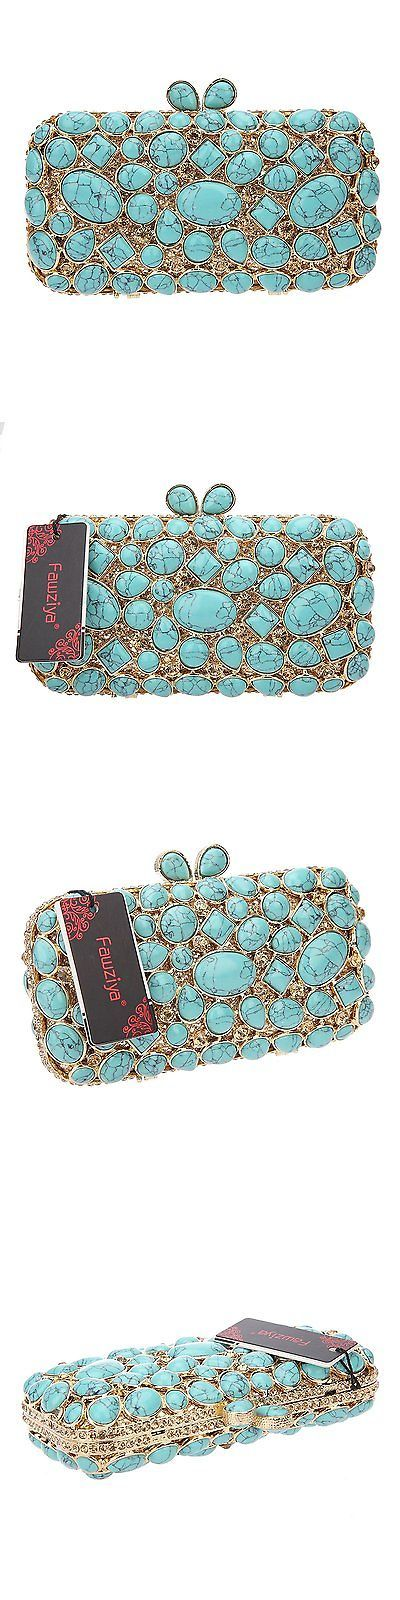 Bridal Handbags And Bags: Fawziya Turquoise Wedding Clutch Bags And Purses For Women Handbags-Turquoise -> BUY IT NOW ONLY: $142.68 on eBay!